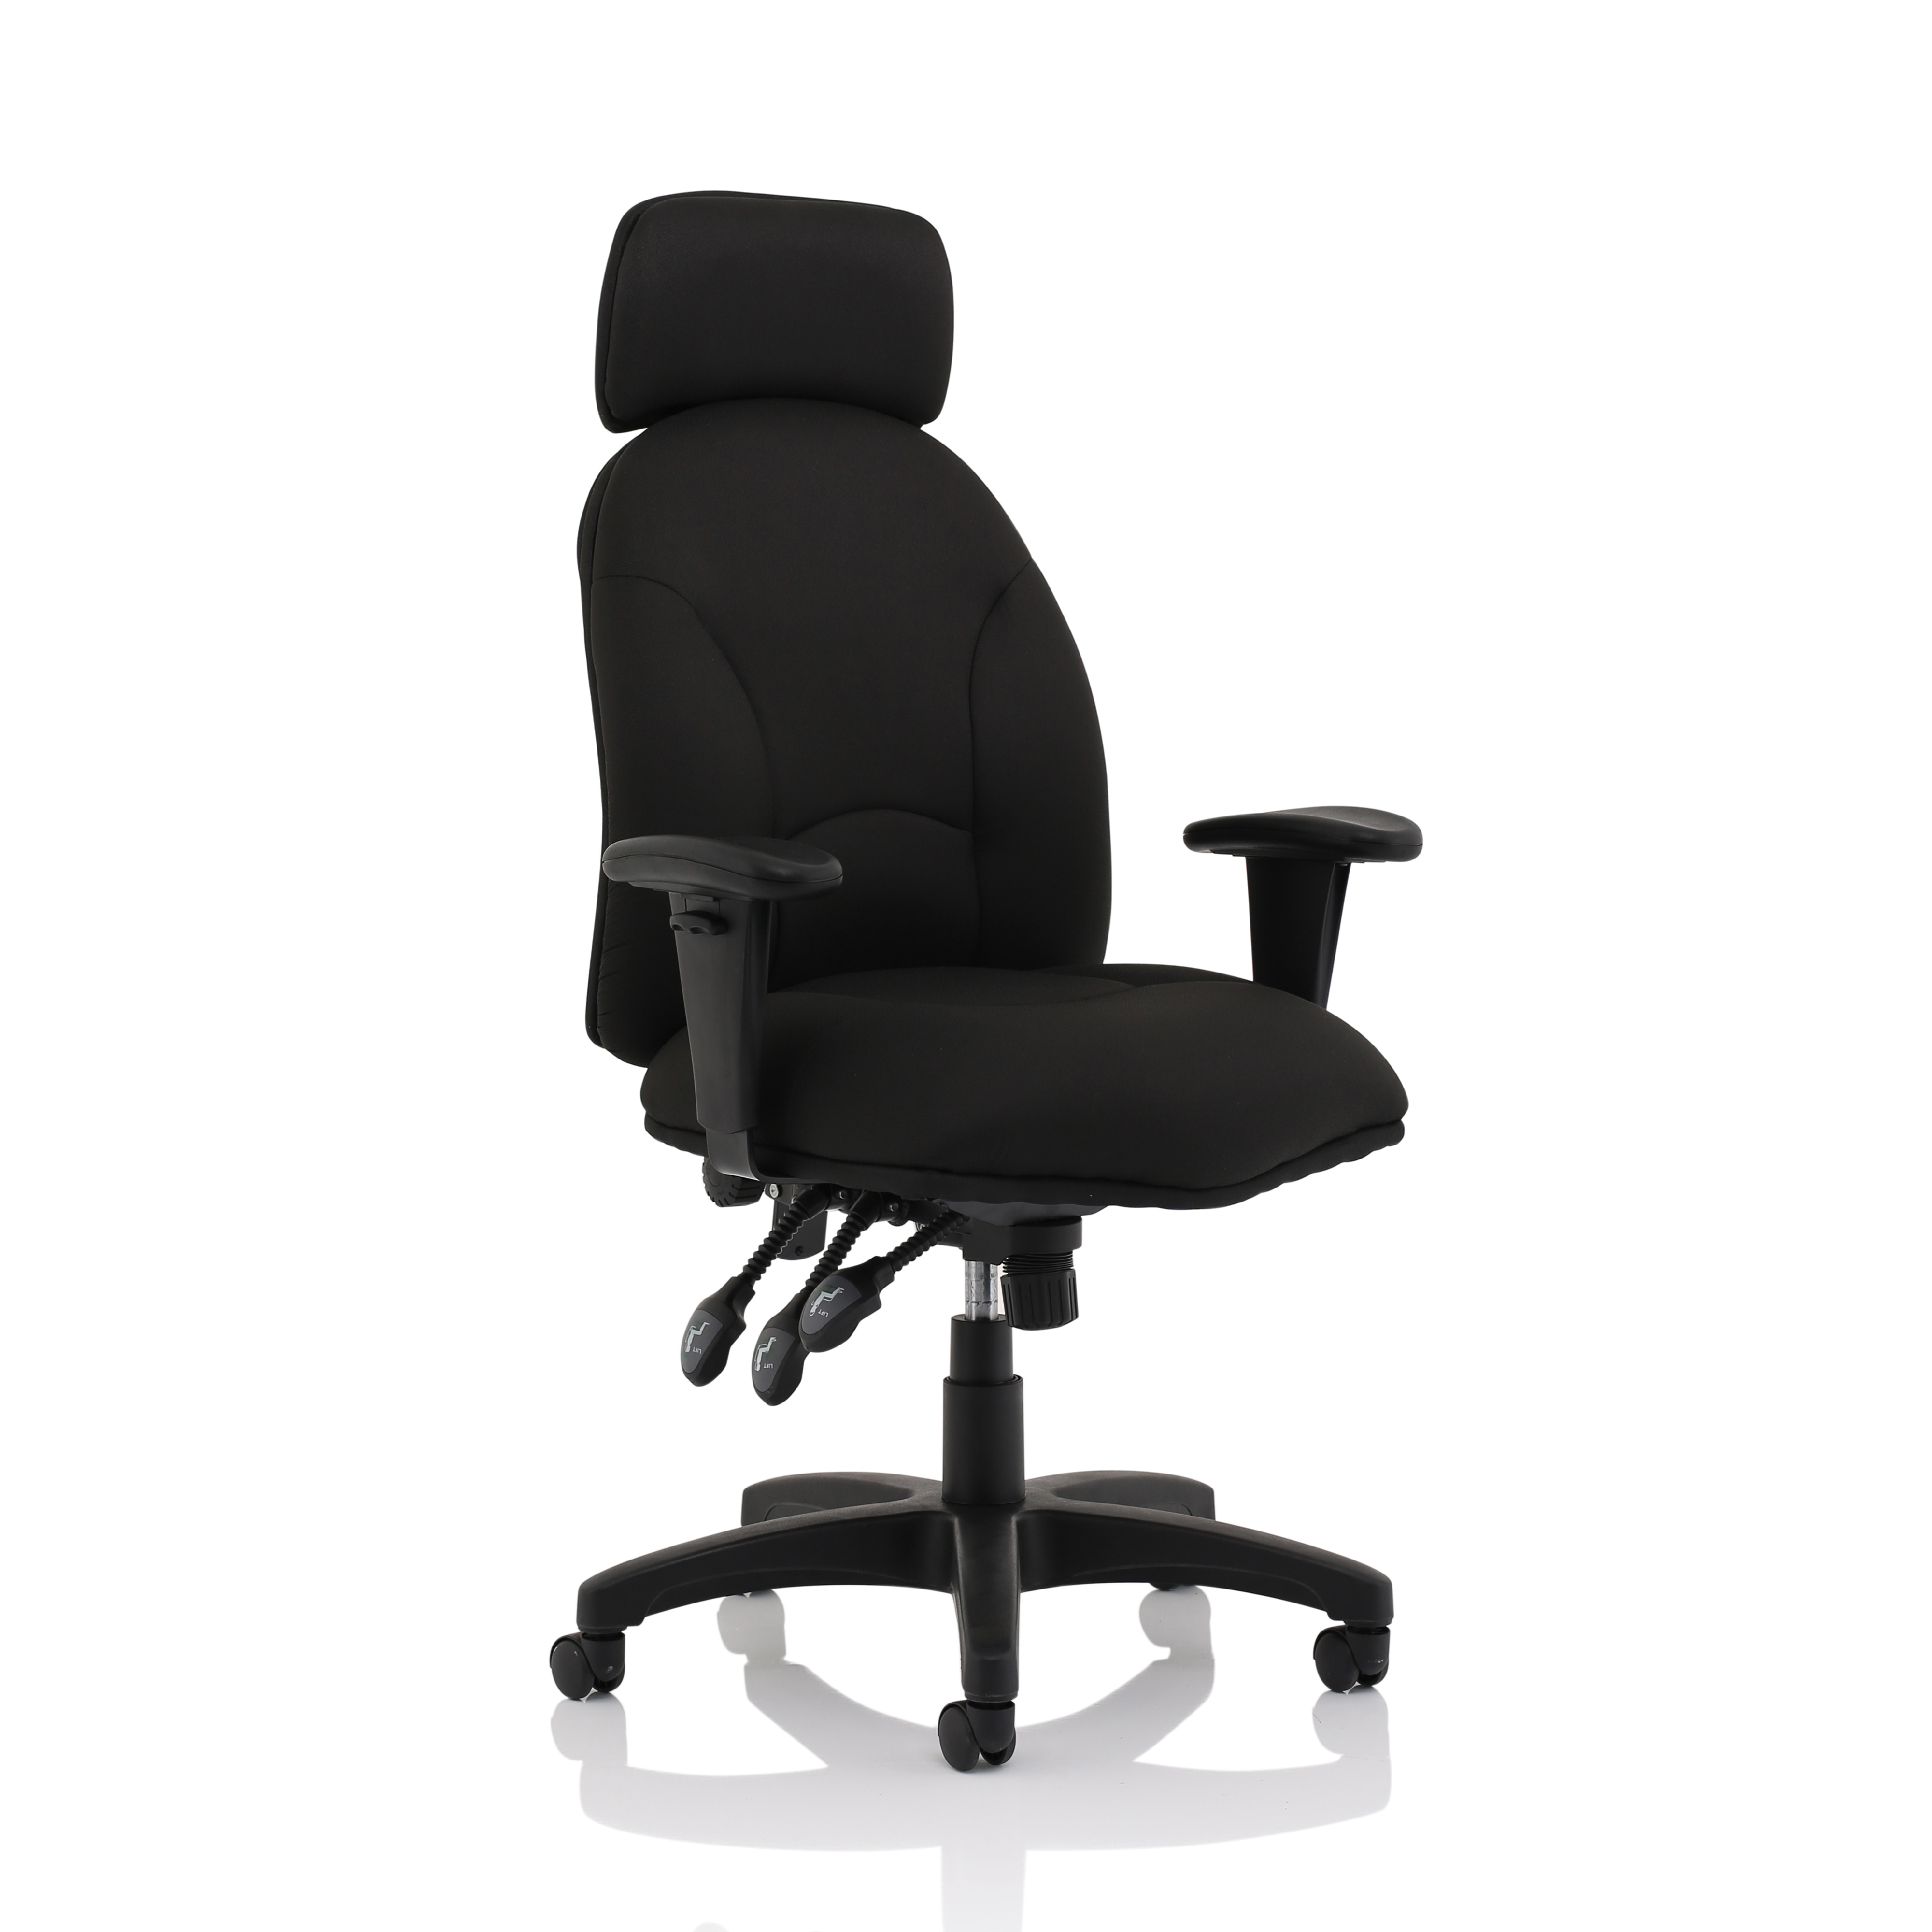 Trexus Energize Aviator Chair Black 540x450x490-590mm Ref 11199-01Black